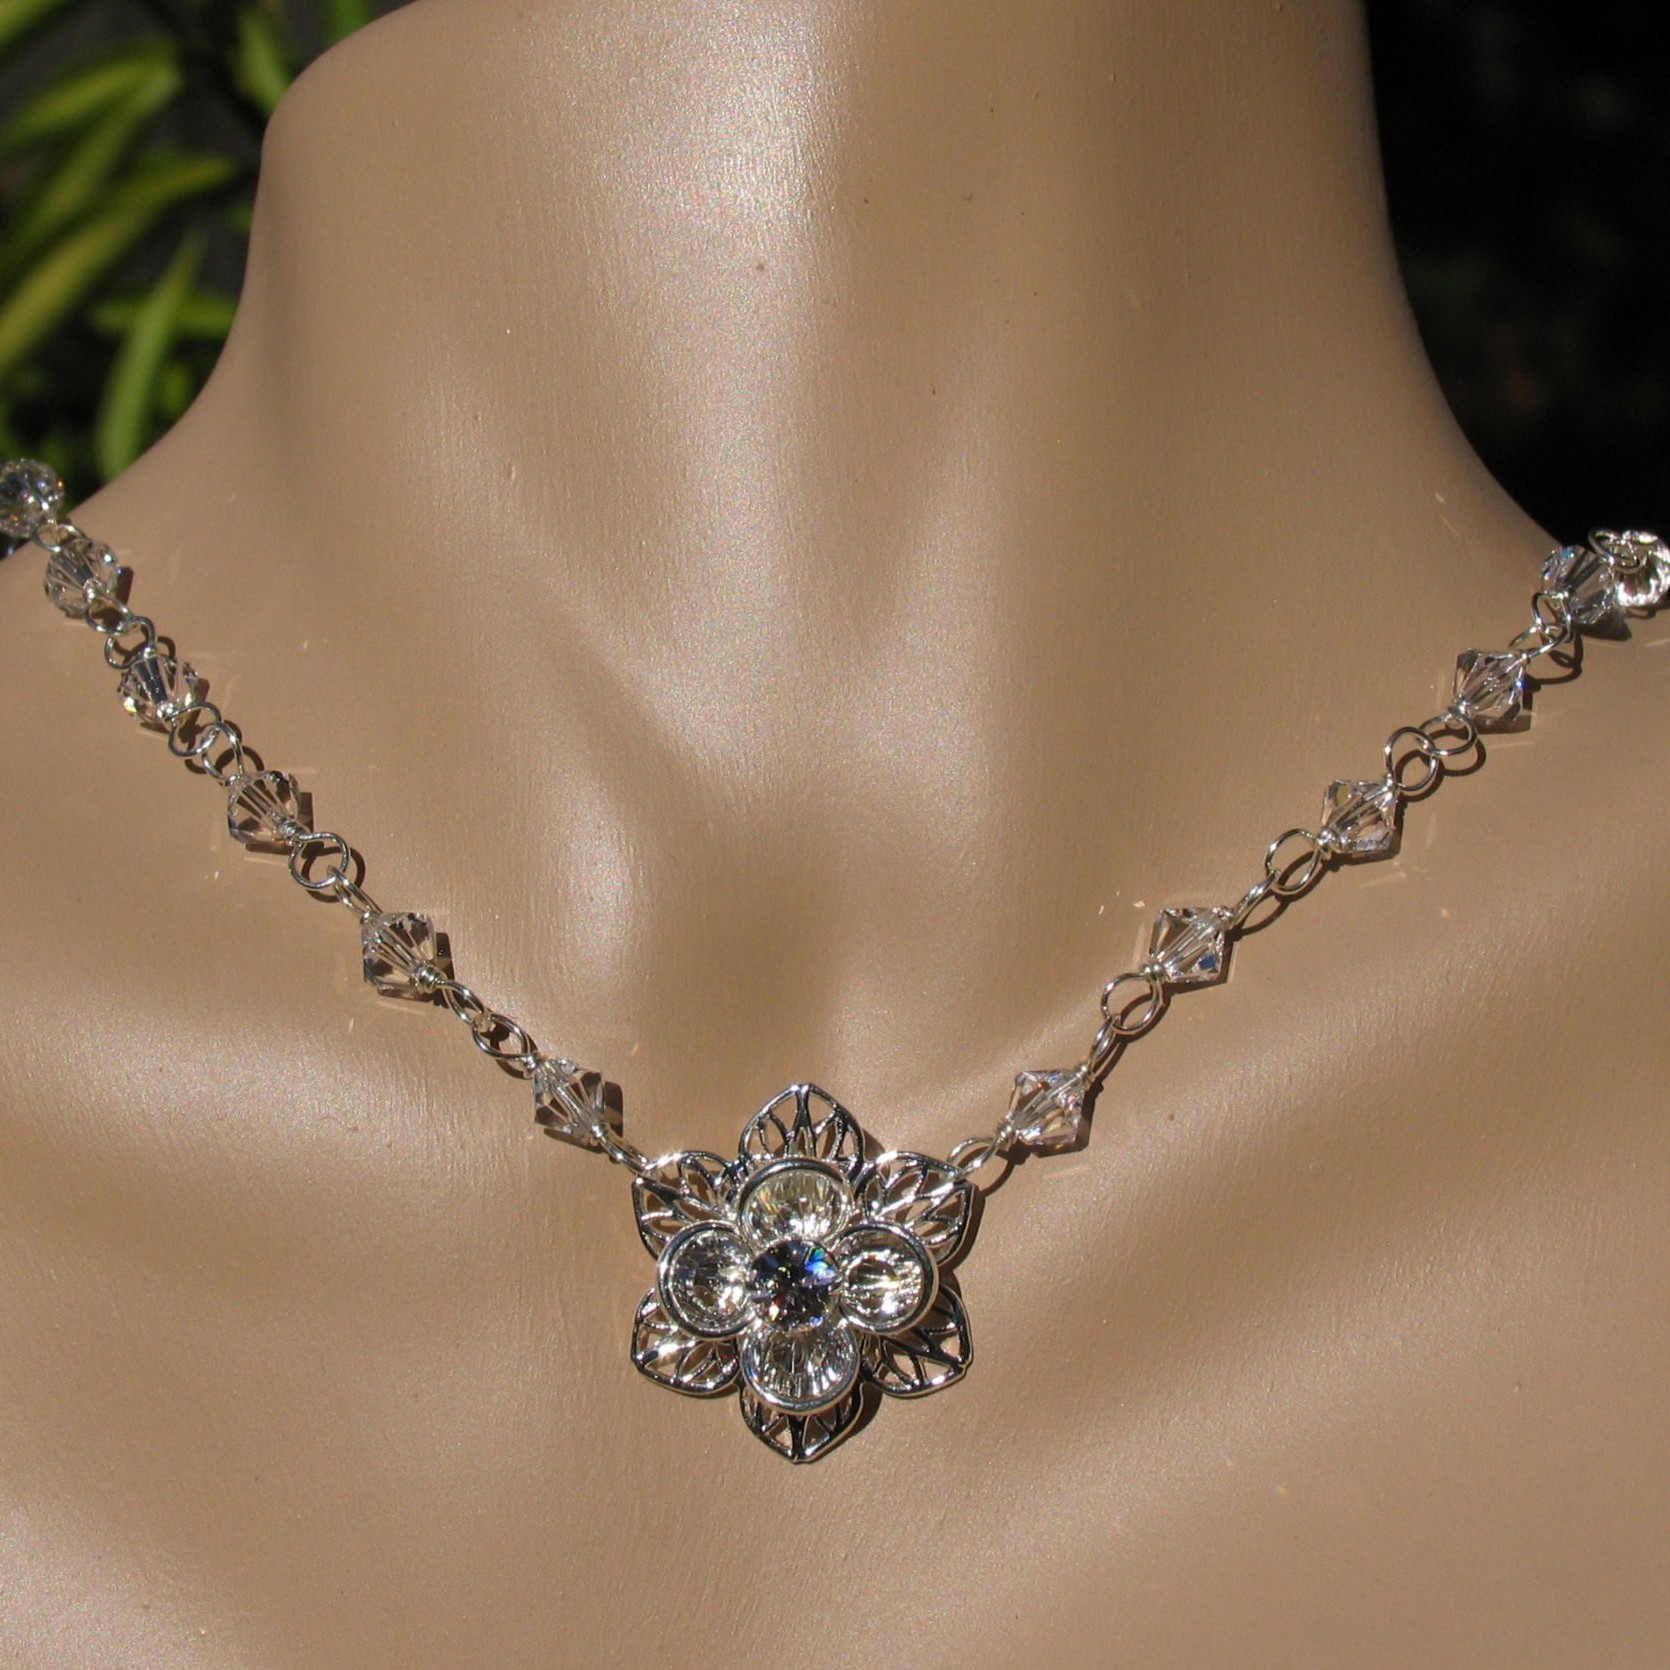 Flowers & Decor, Jewelry, silver, Necklaces, Bride, Accessories, Flower, Bridesmaid, Bridal, Crystal, Necklace, Weddings, Swarovski, Formal, Filigree, Sterling, Handmade by diana